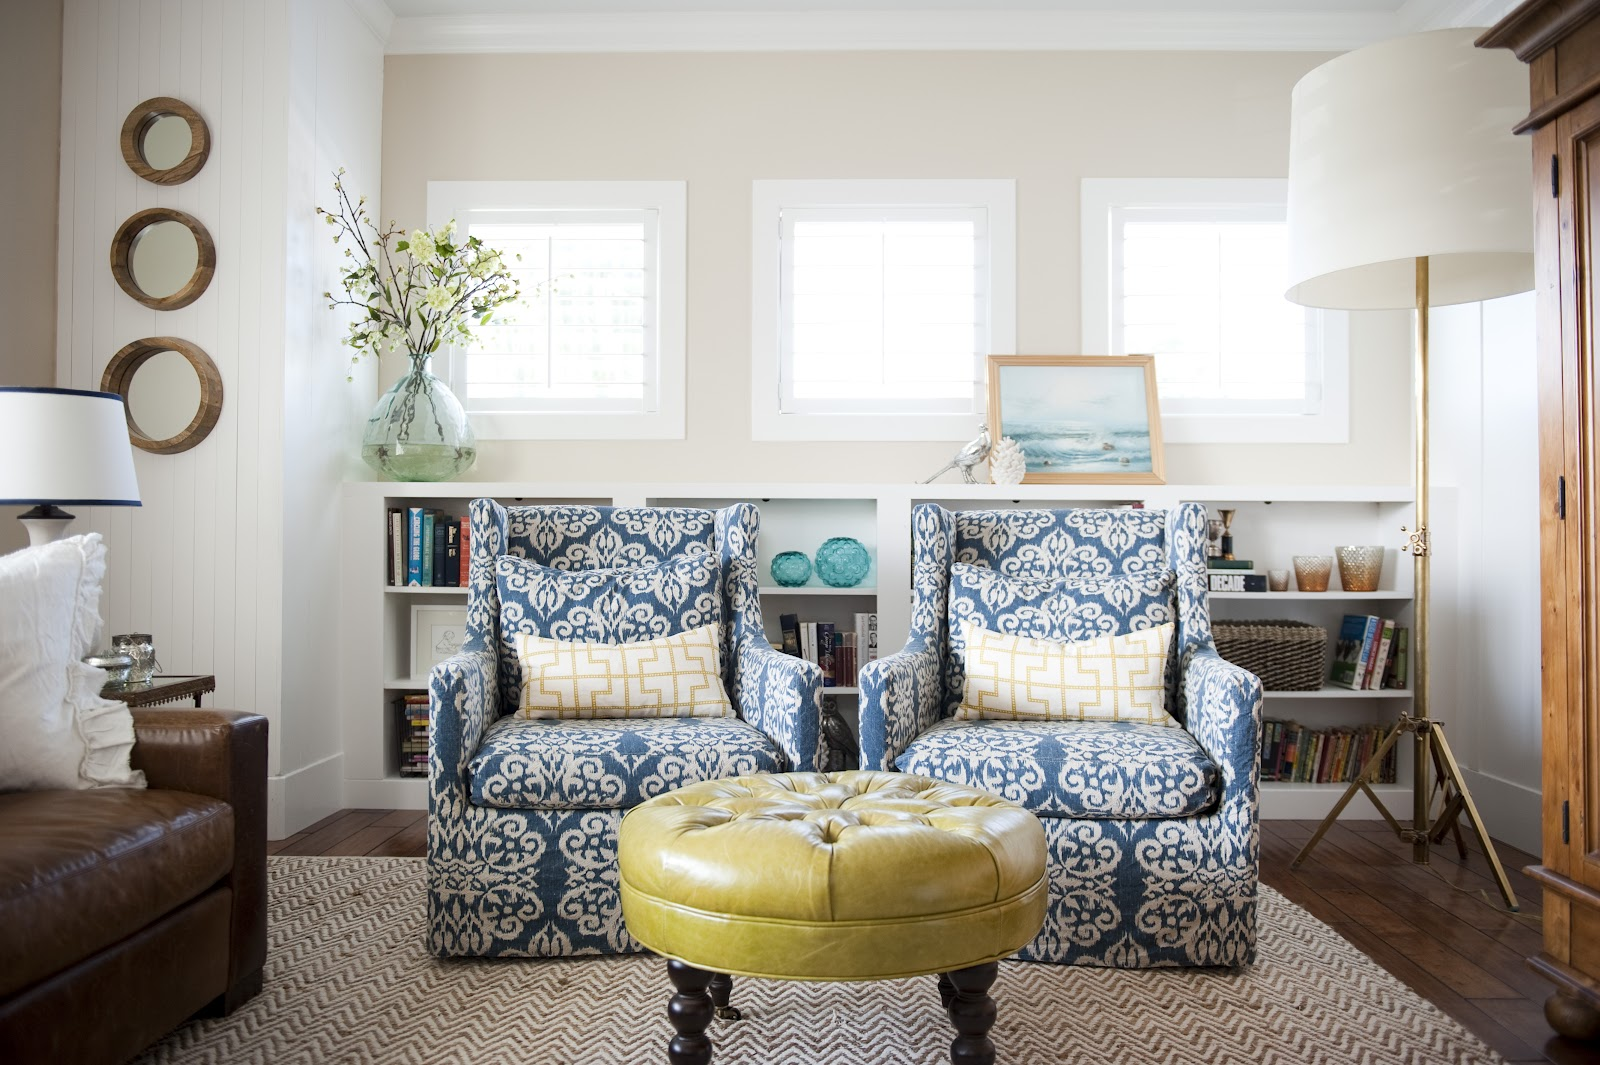 The Swivel Chairs And Ottoman Are From Lee Industries. The Rug Is From West  Elm.